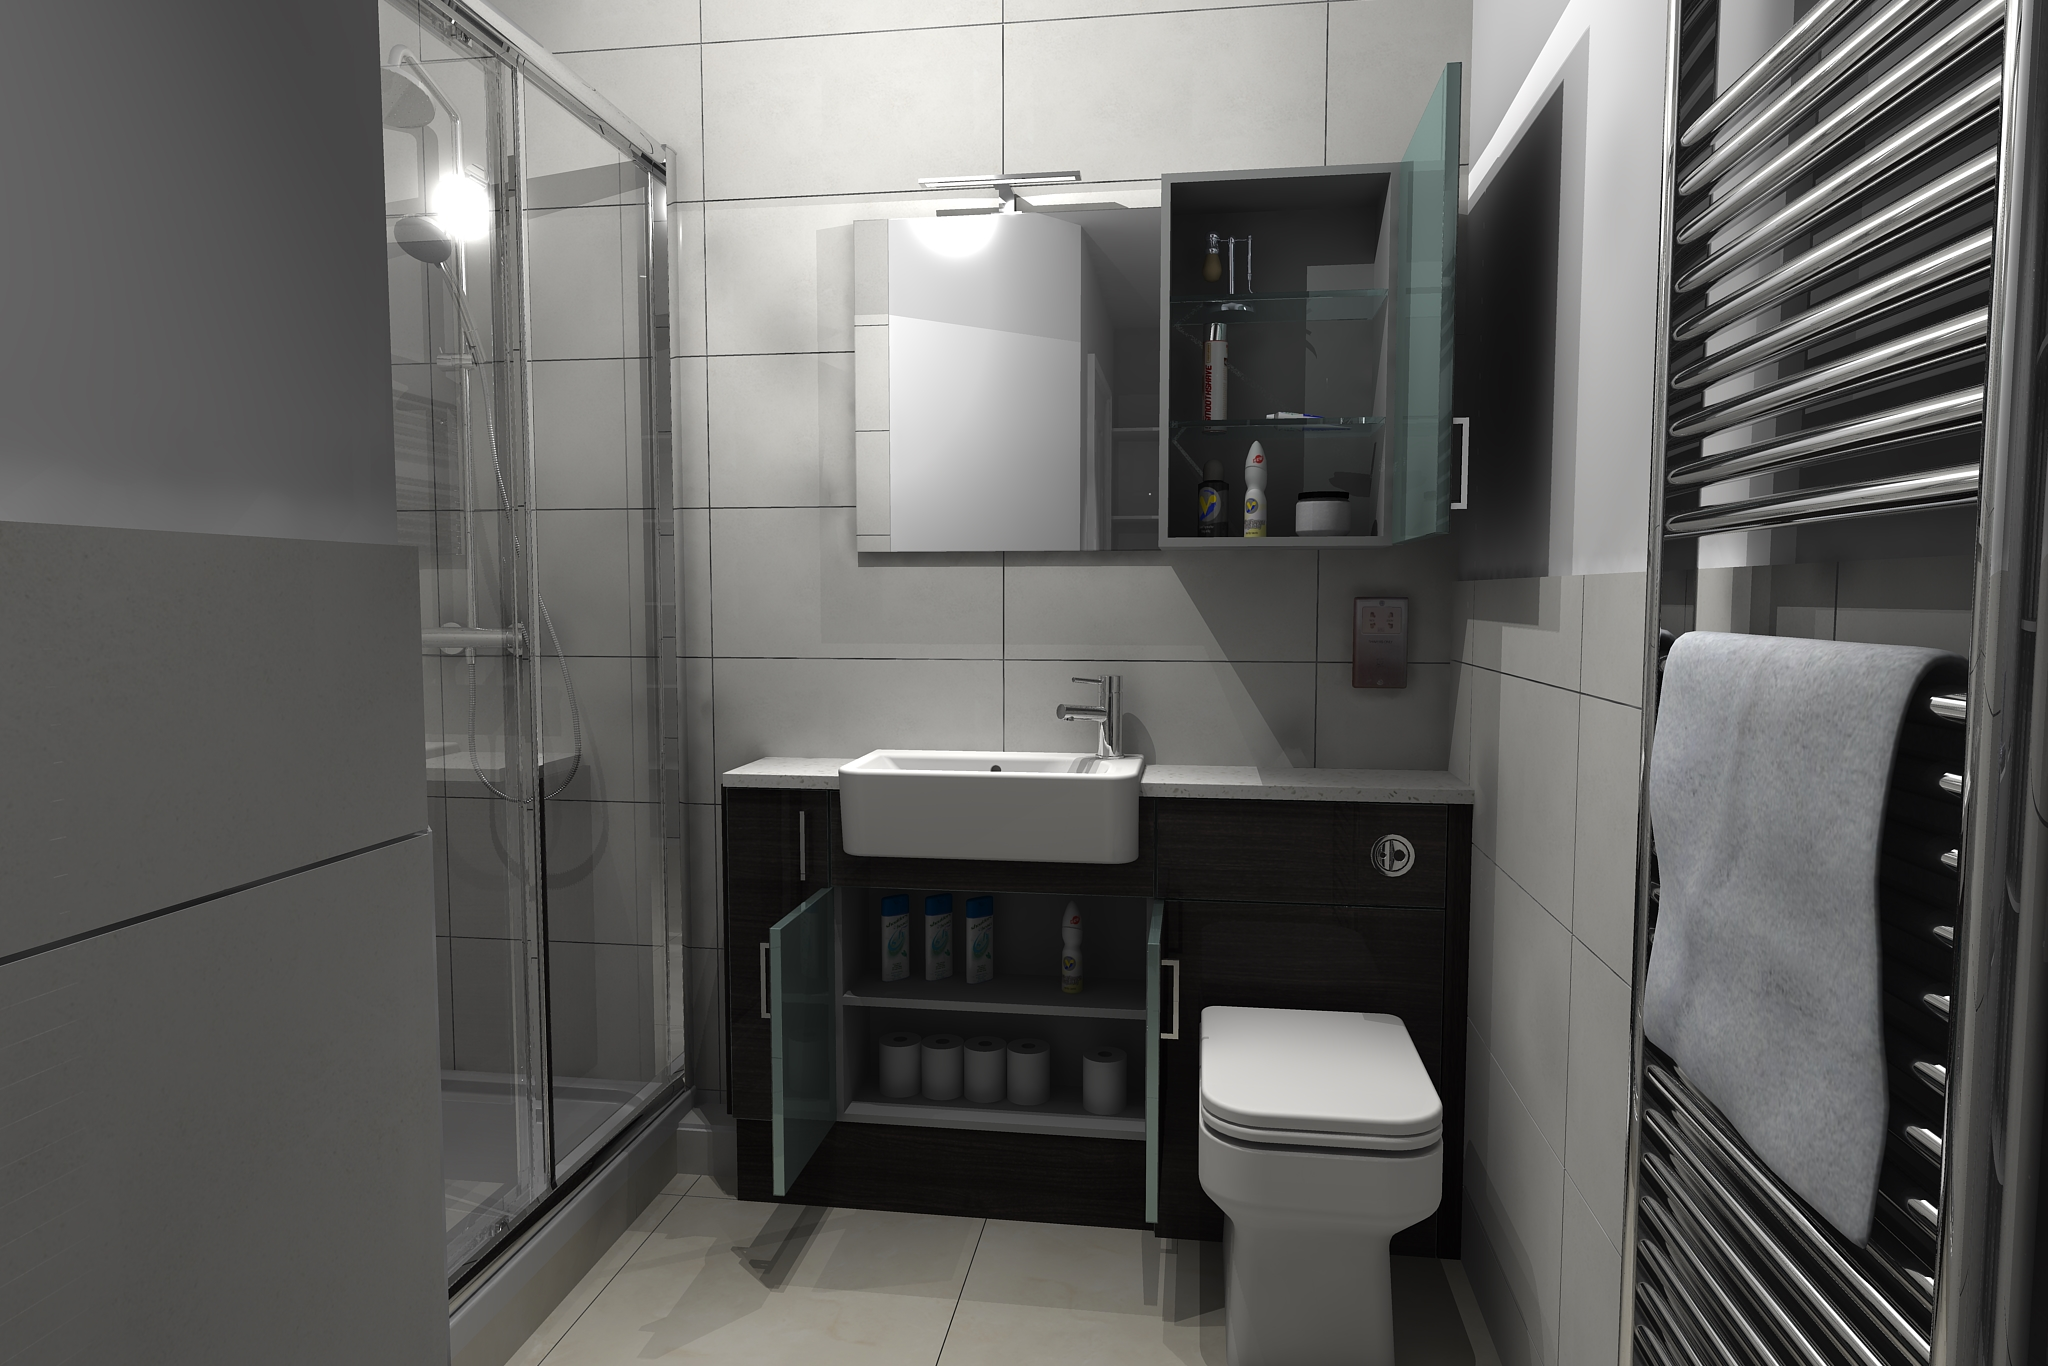 https://sykesbathrooms.com/wp-content/uploads/2015/11/HILL-EN-SUITE-3.jpg